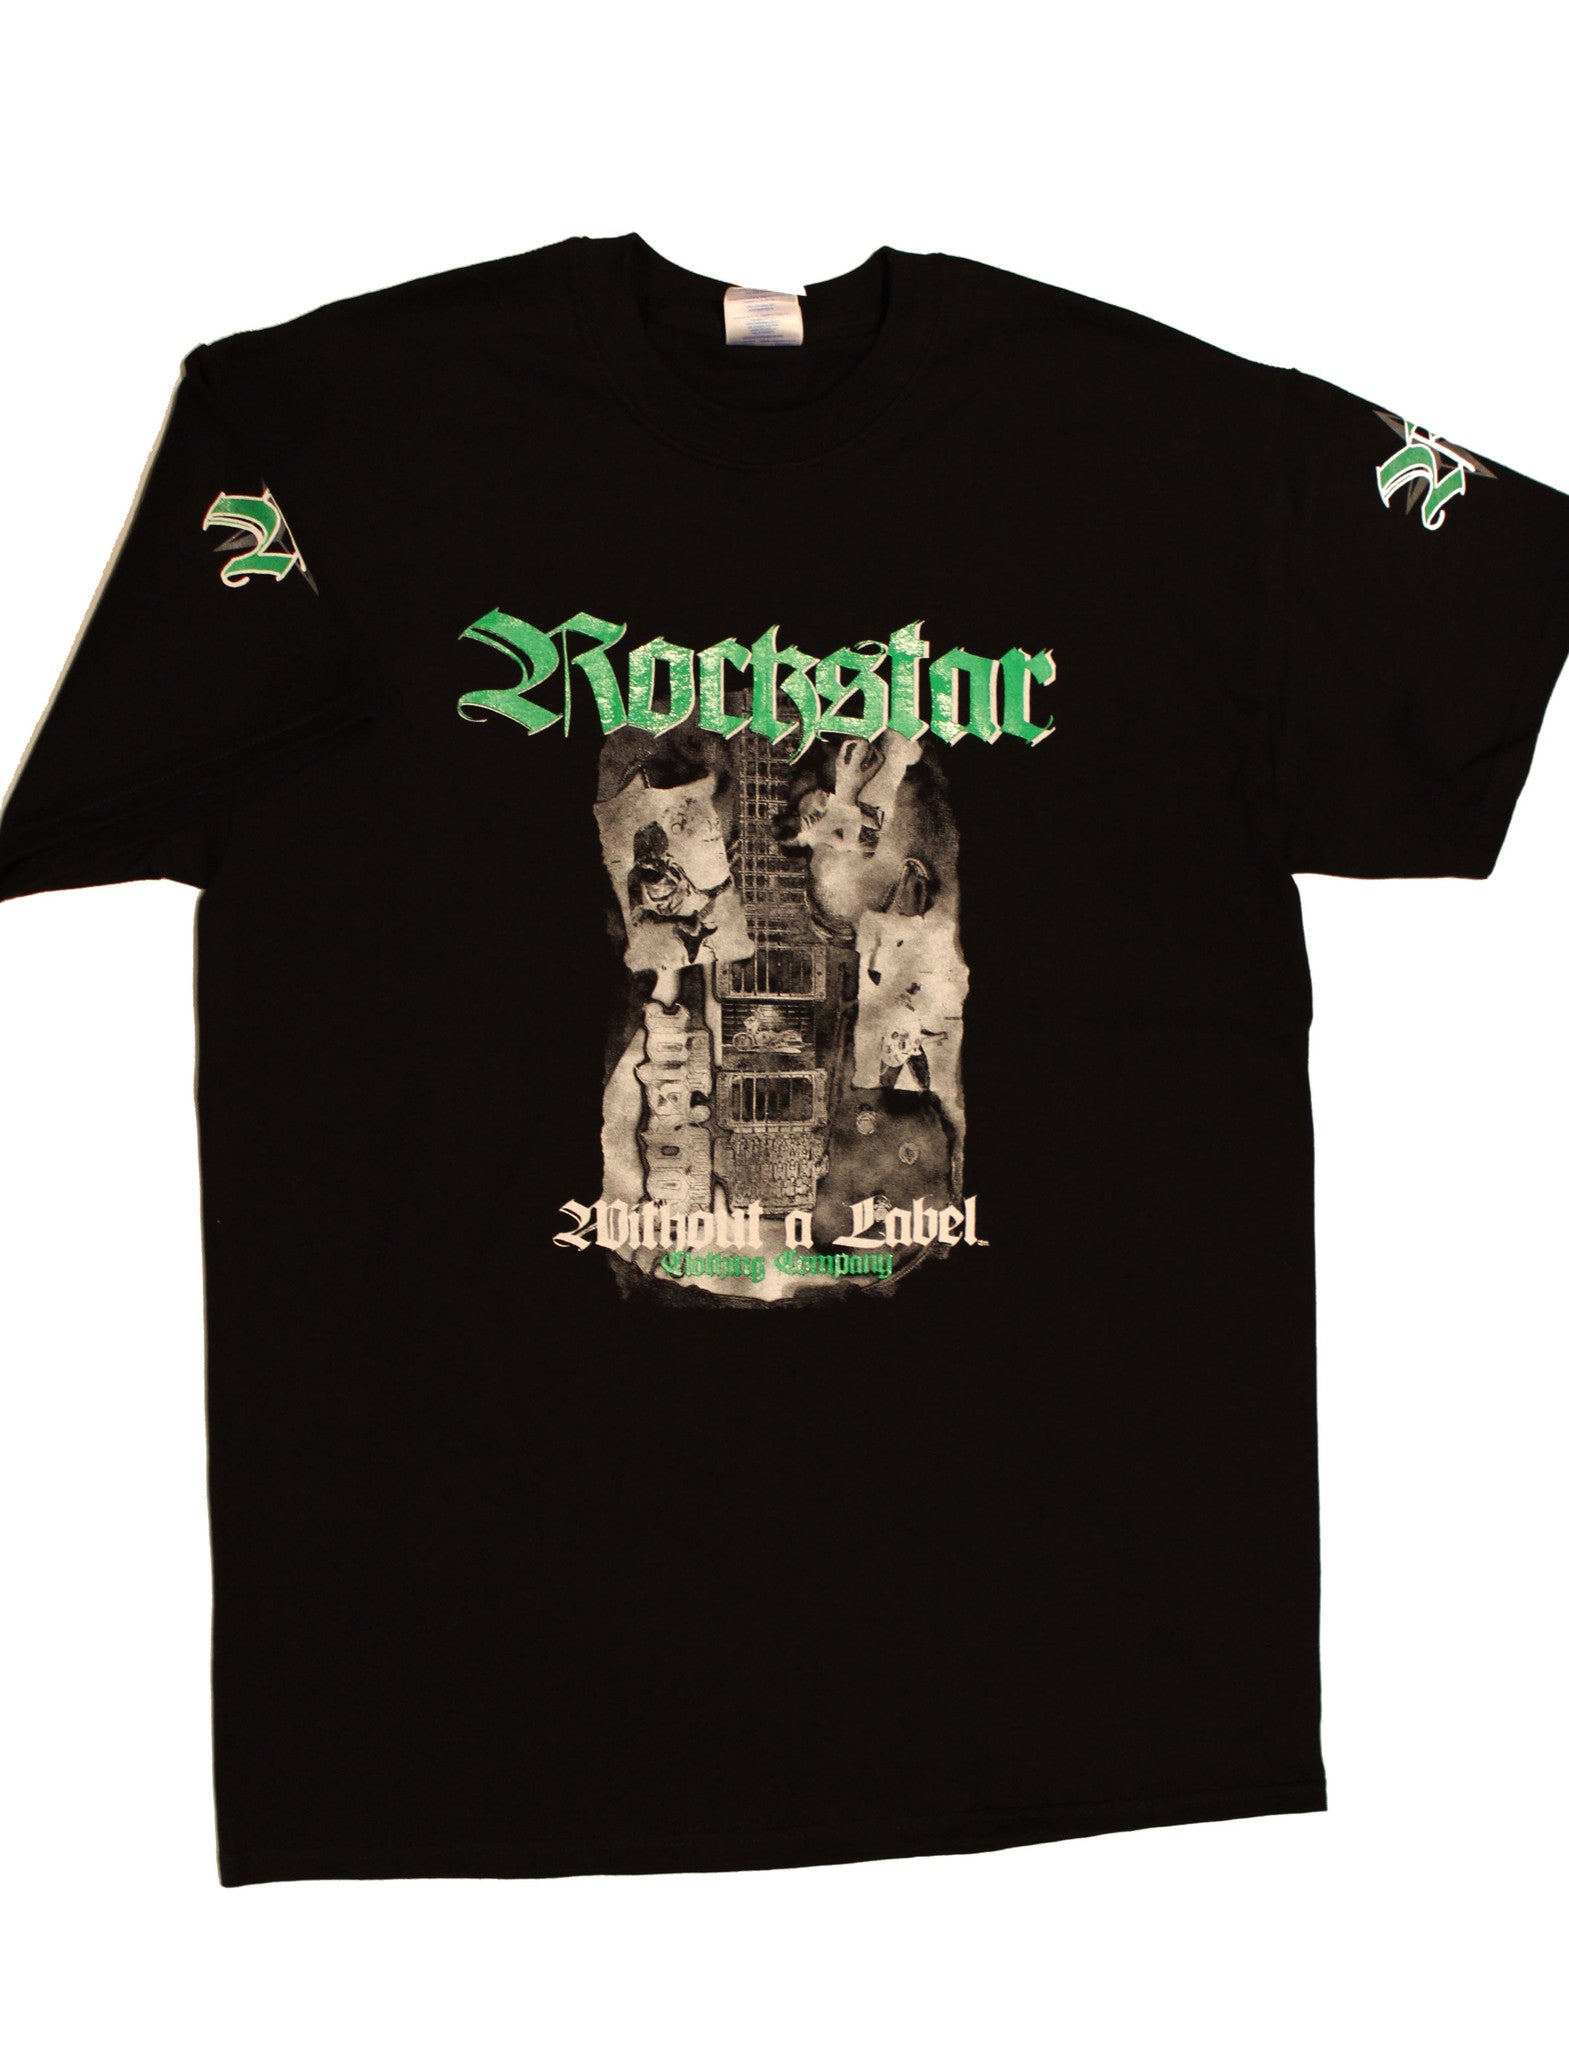 "T- Shirt Black with Green Rockstar ""Road Life"" Design"